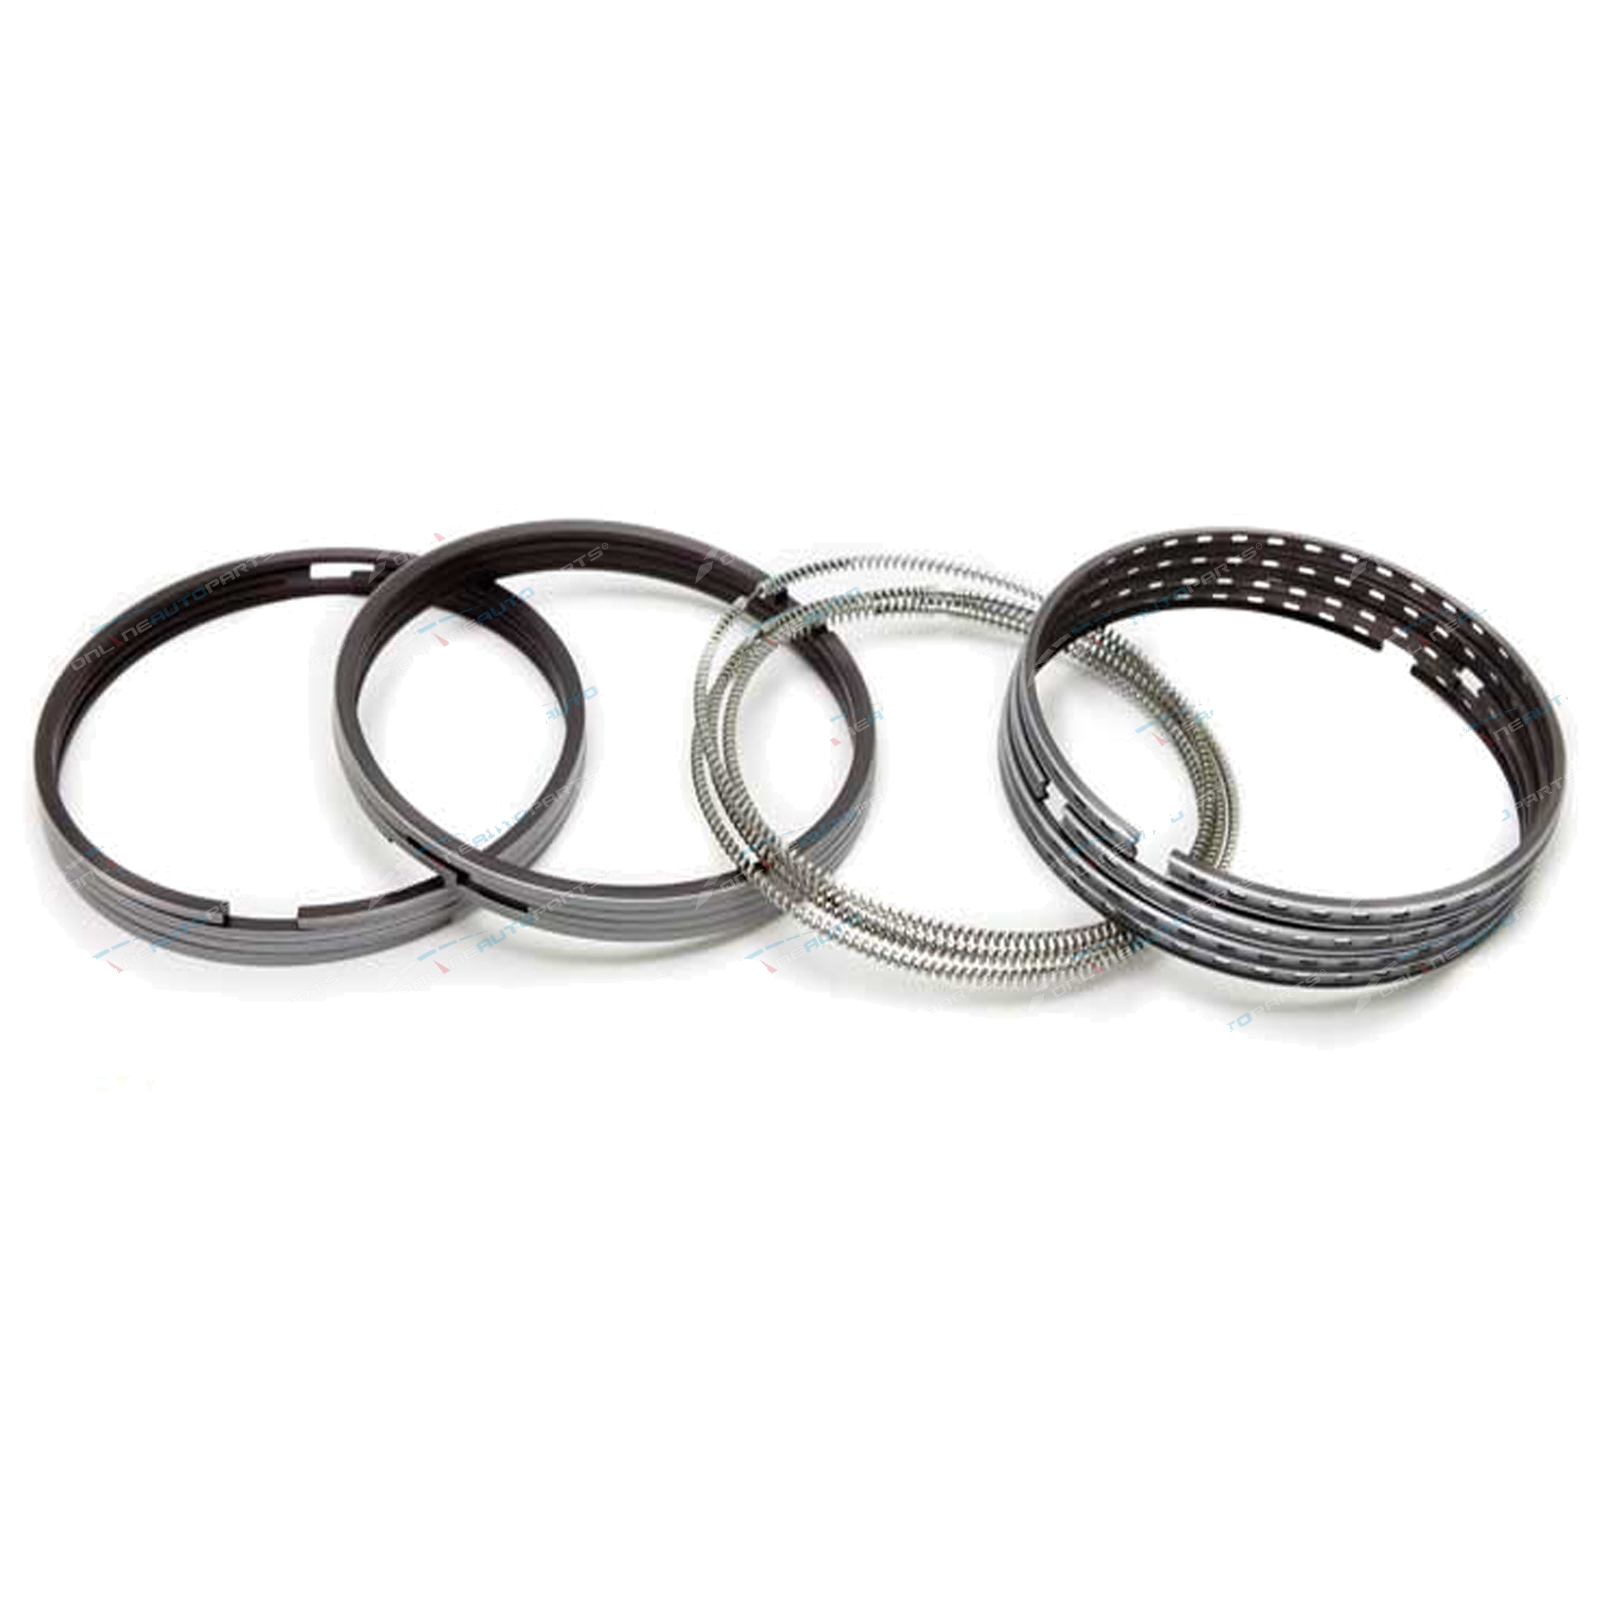 Standard Engine Piston Ring Set suits Toyota Hilux LN147